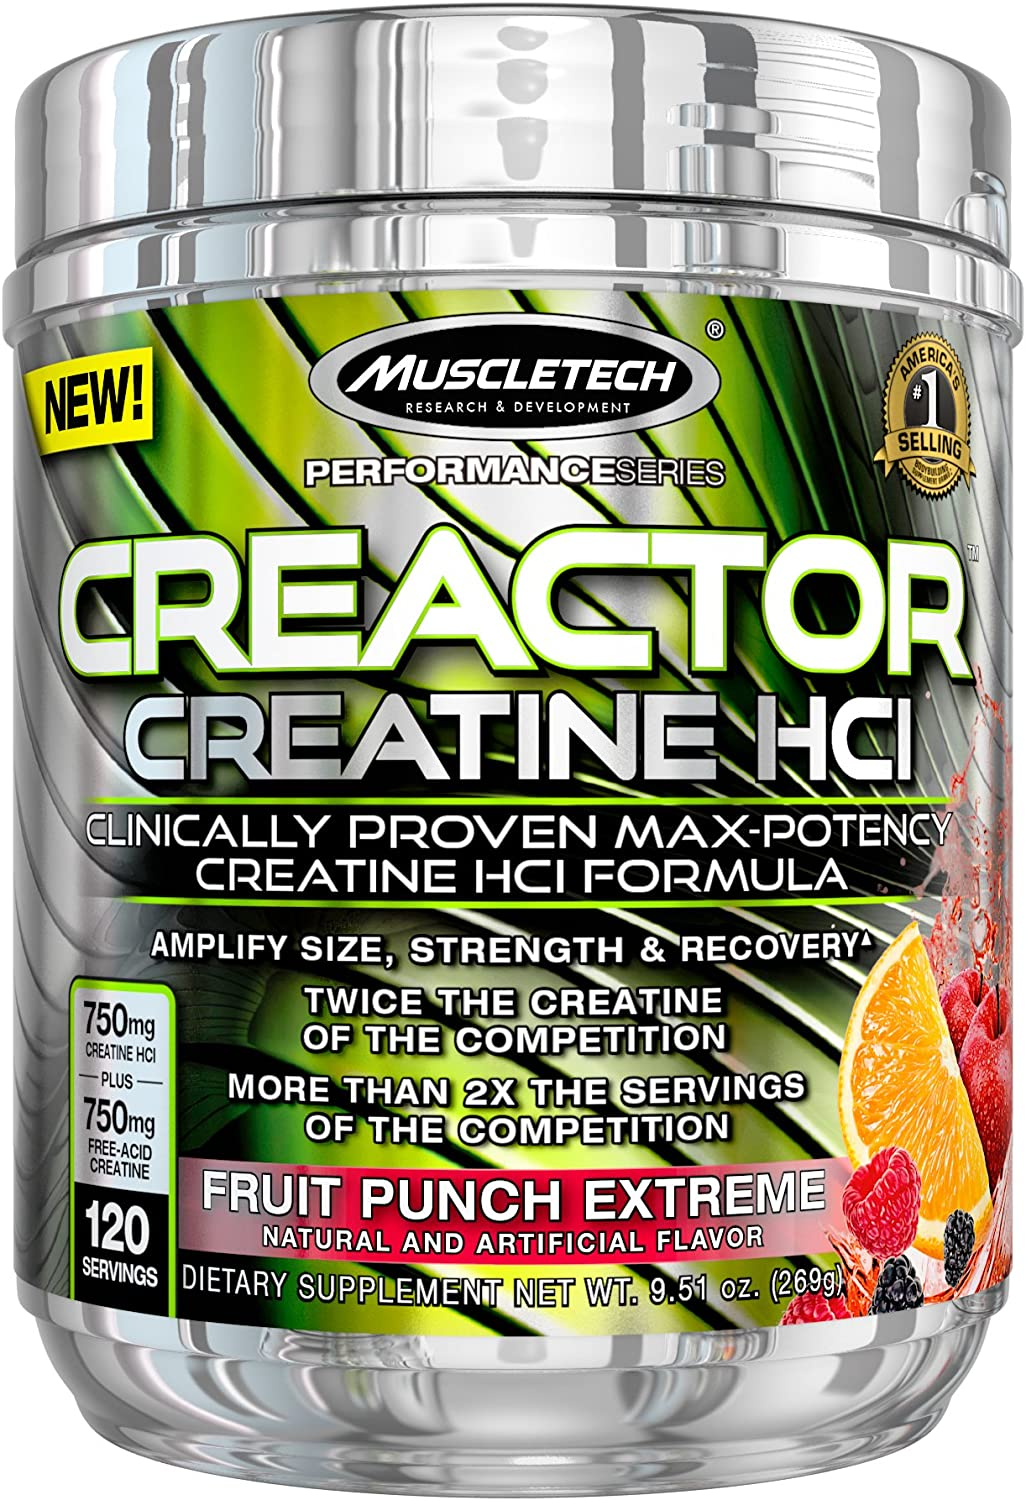 MuscleTech Creactor, Max Potency Creatine Powder, Micronized Creatine and Creatine HCl, Fruit Punch Extreme, 120 Servings 269g